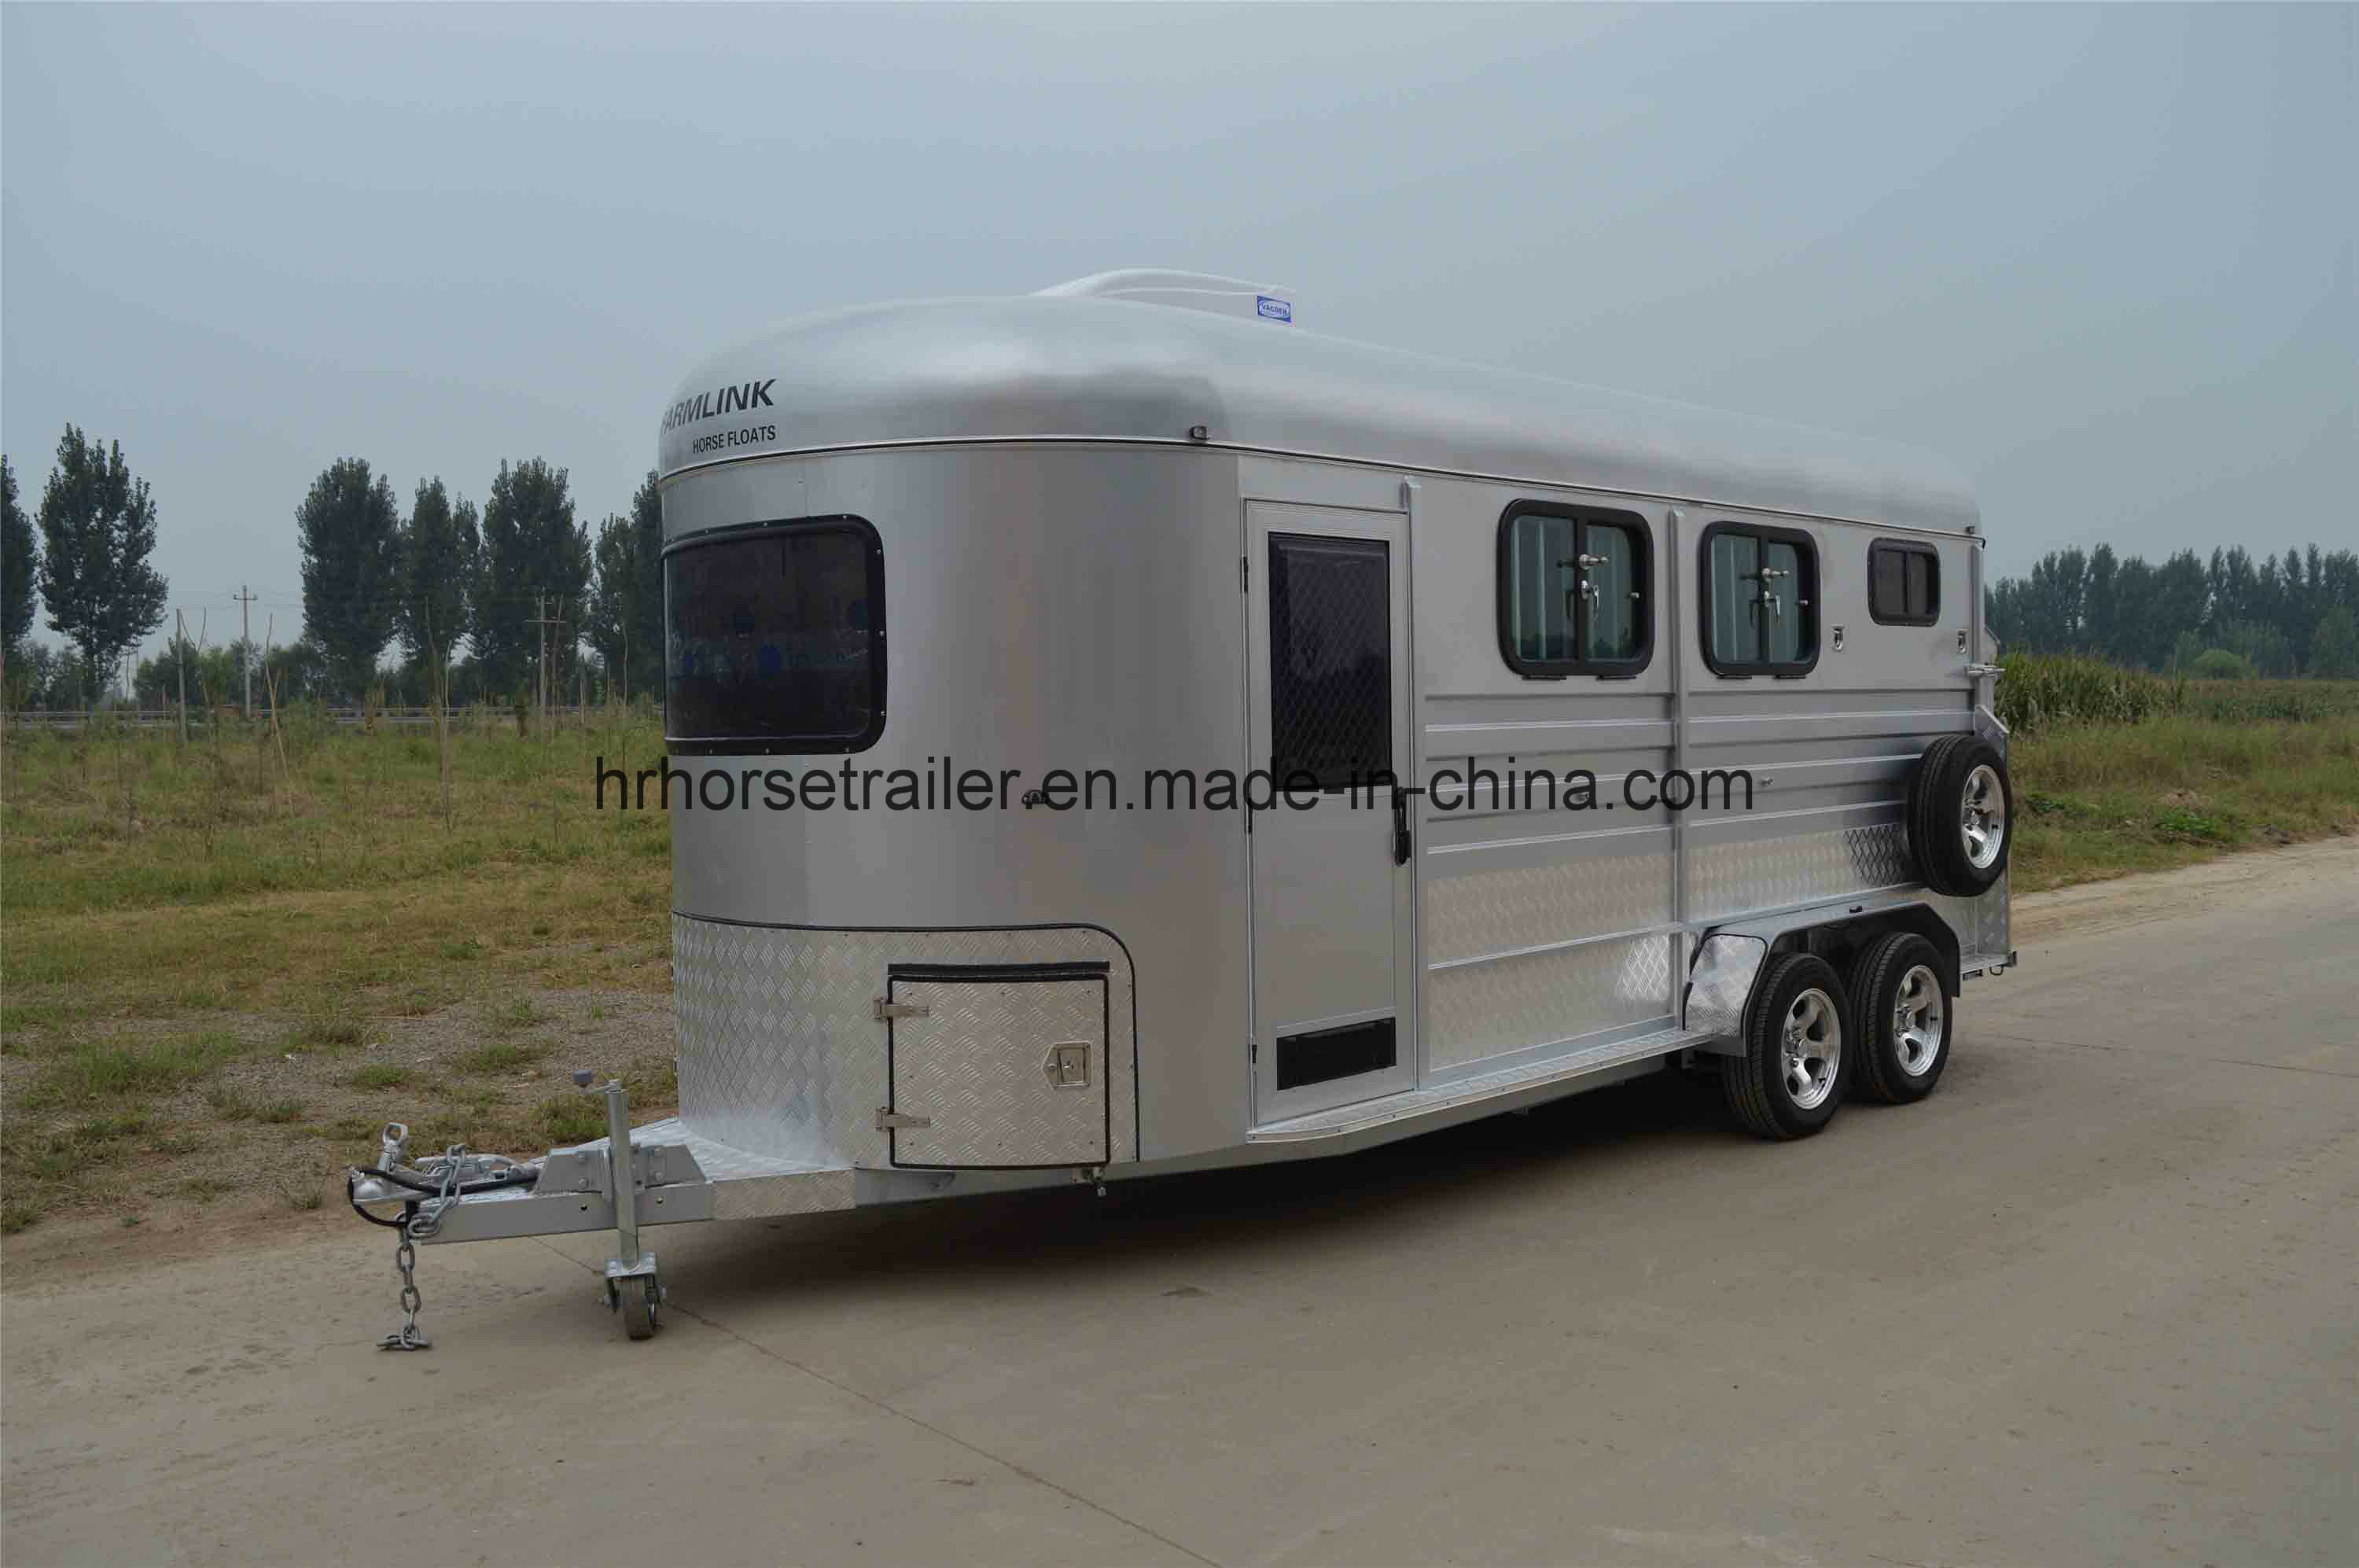 [Hot Item] Overnighter Angle Load Horse Trailer